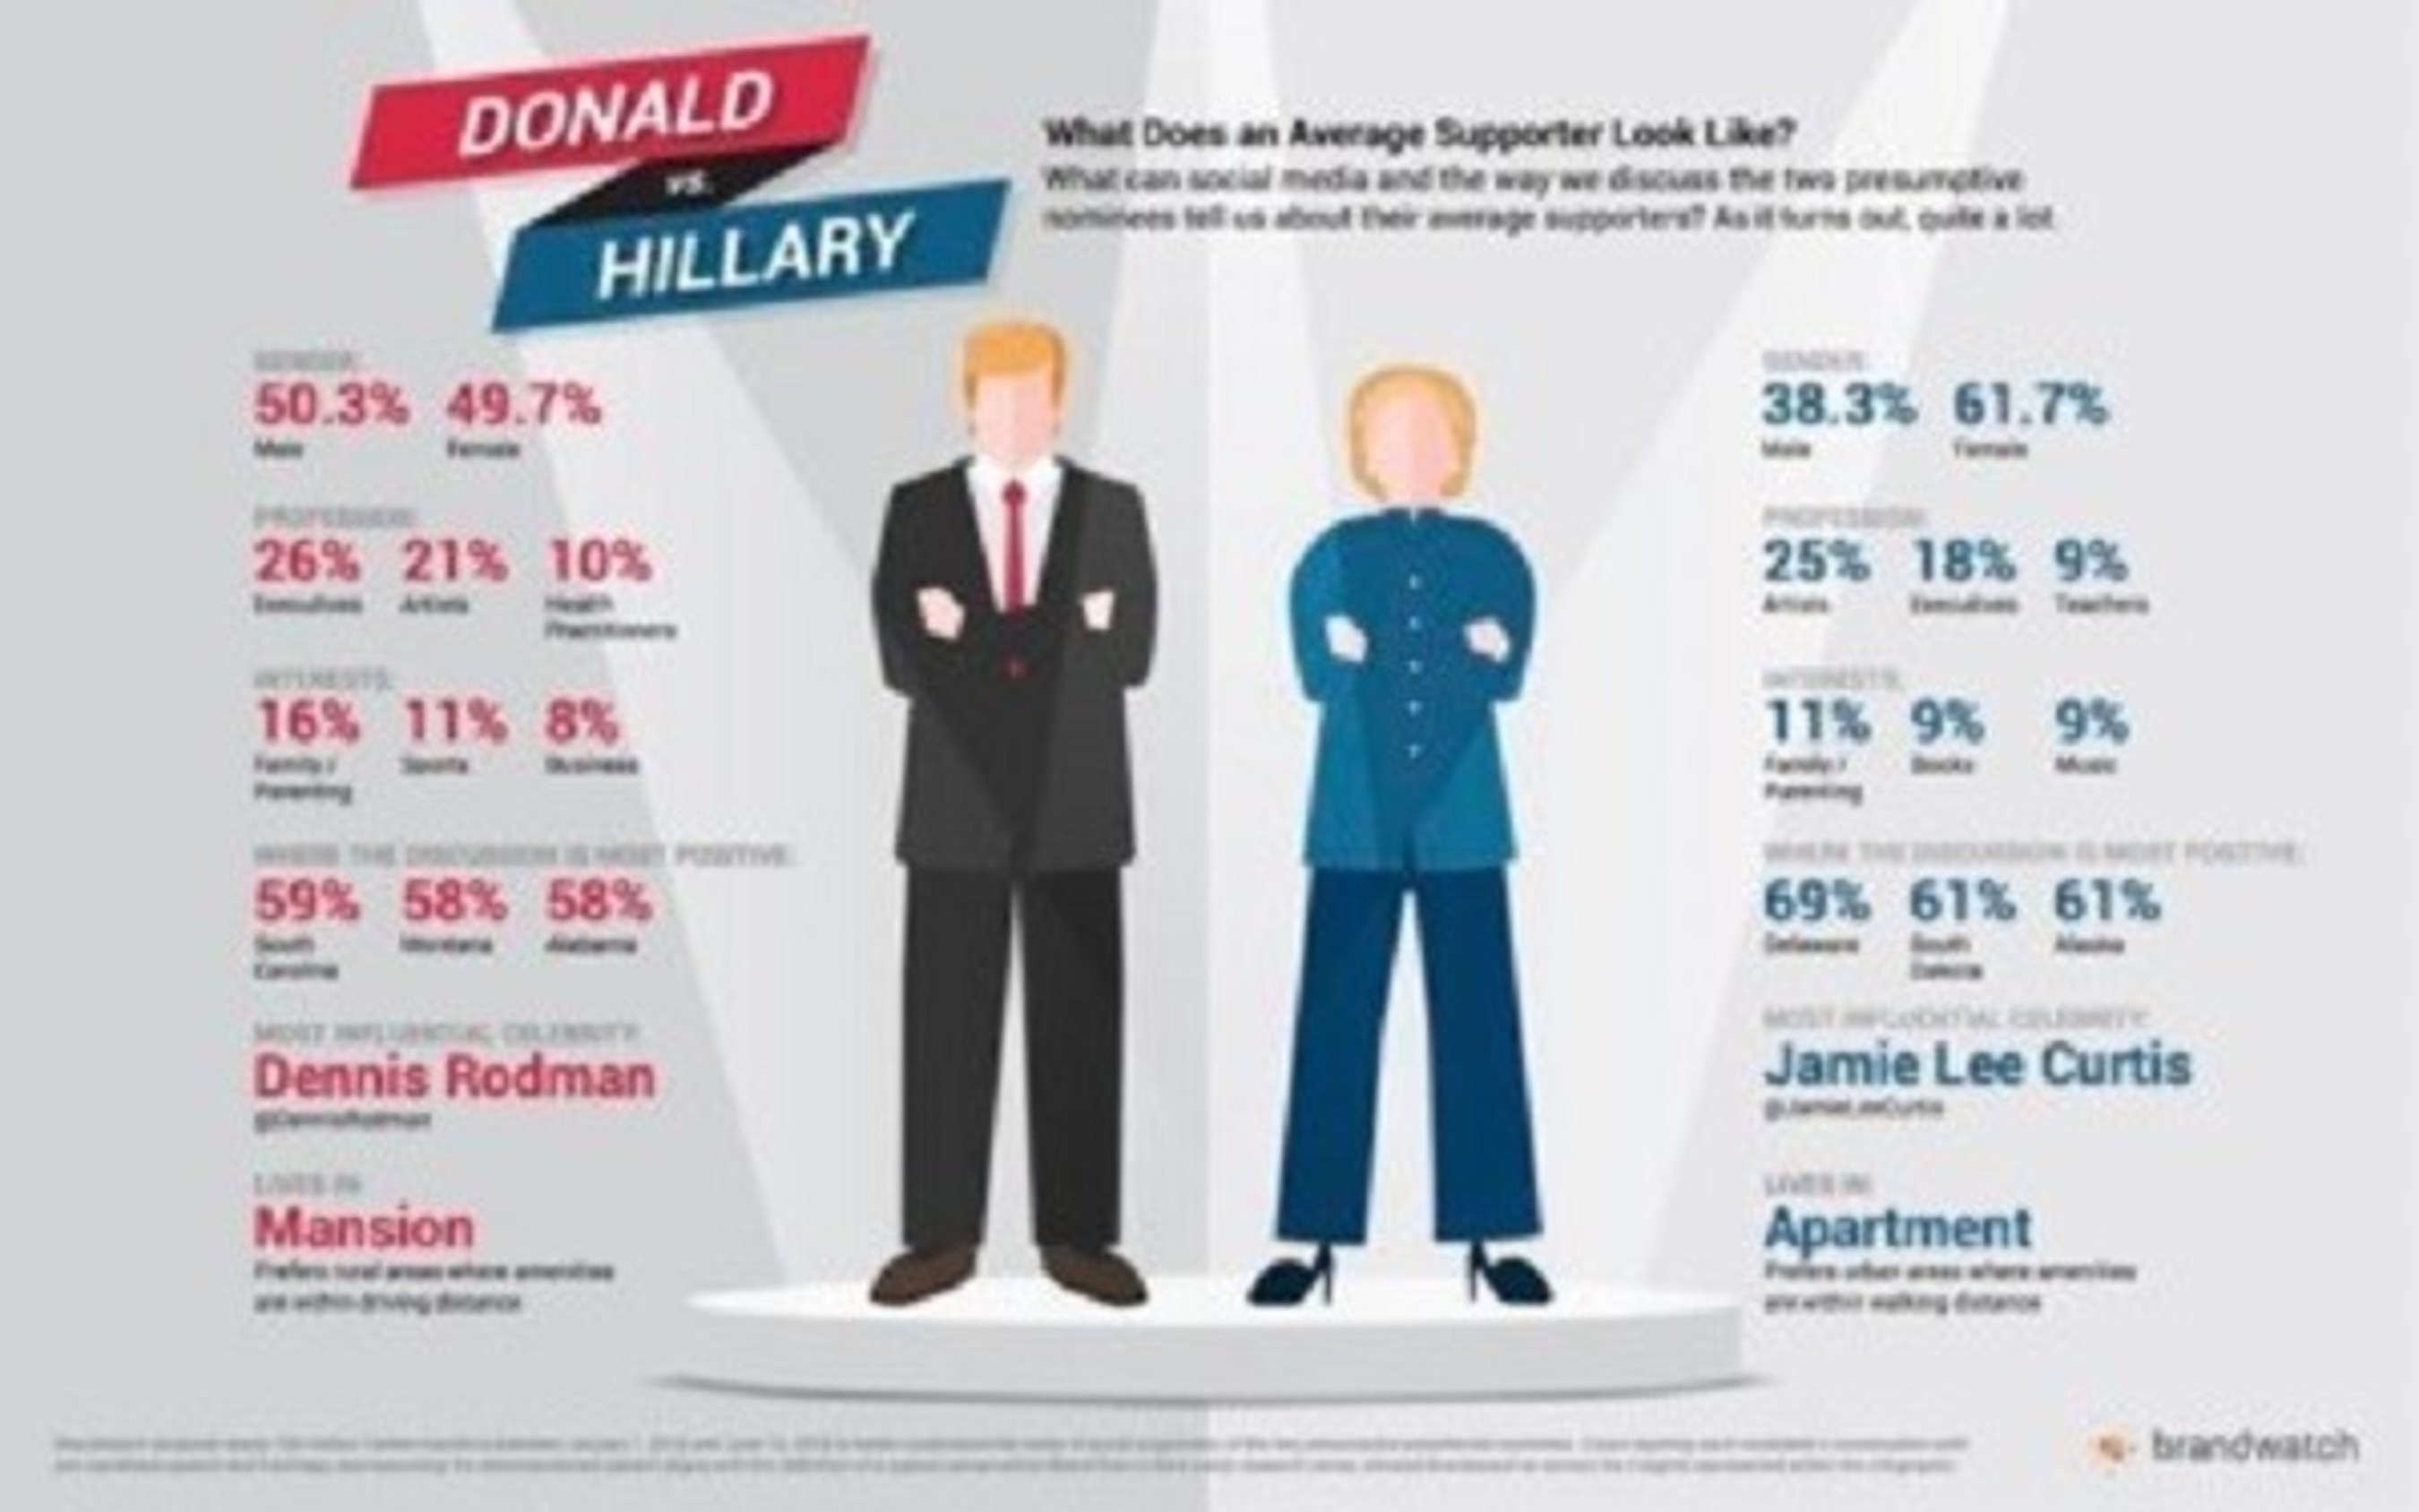 Brandwatch's 2016 U.S. Presidential Election Social Data Infographic: The Final Two - Hillary Clinton vs Donald Trump.